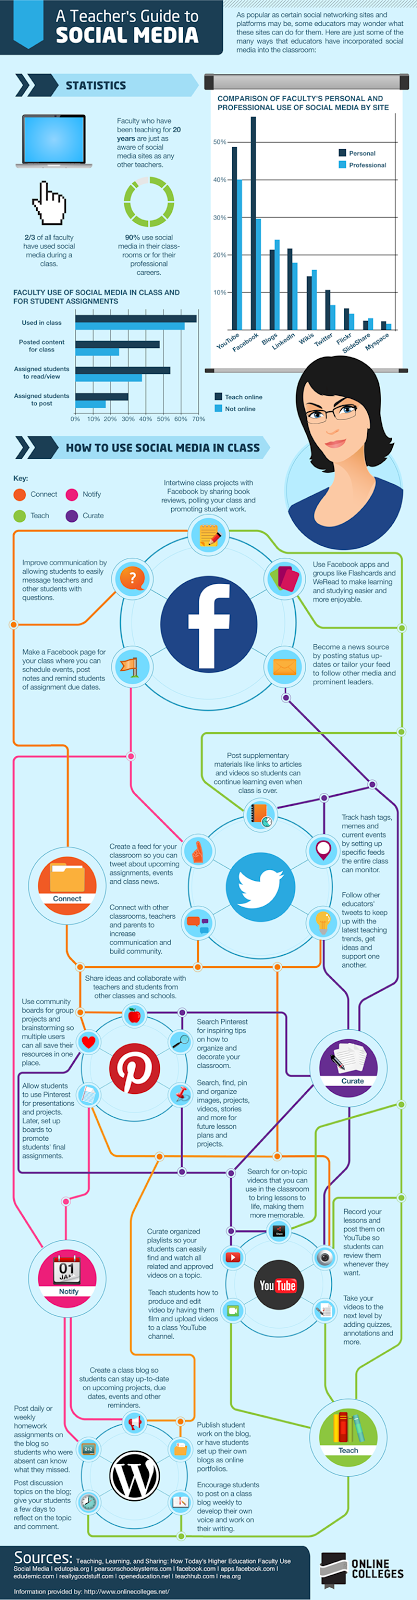 Teachers' Guide to Social Media Infographic. Source: https://s3.amazonaws.com/infographics/Teacher-Guide-Social-Media-800.png